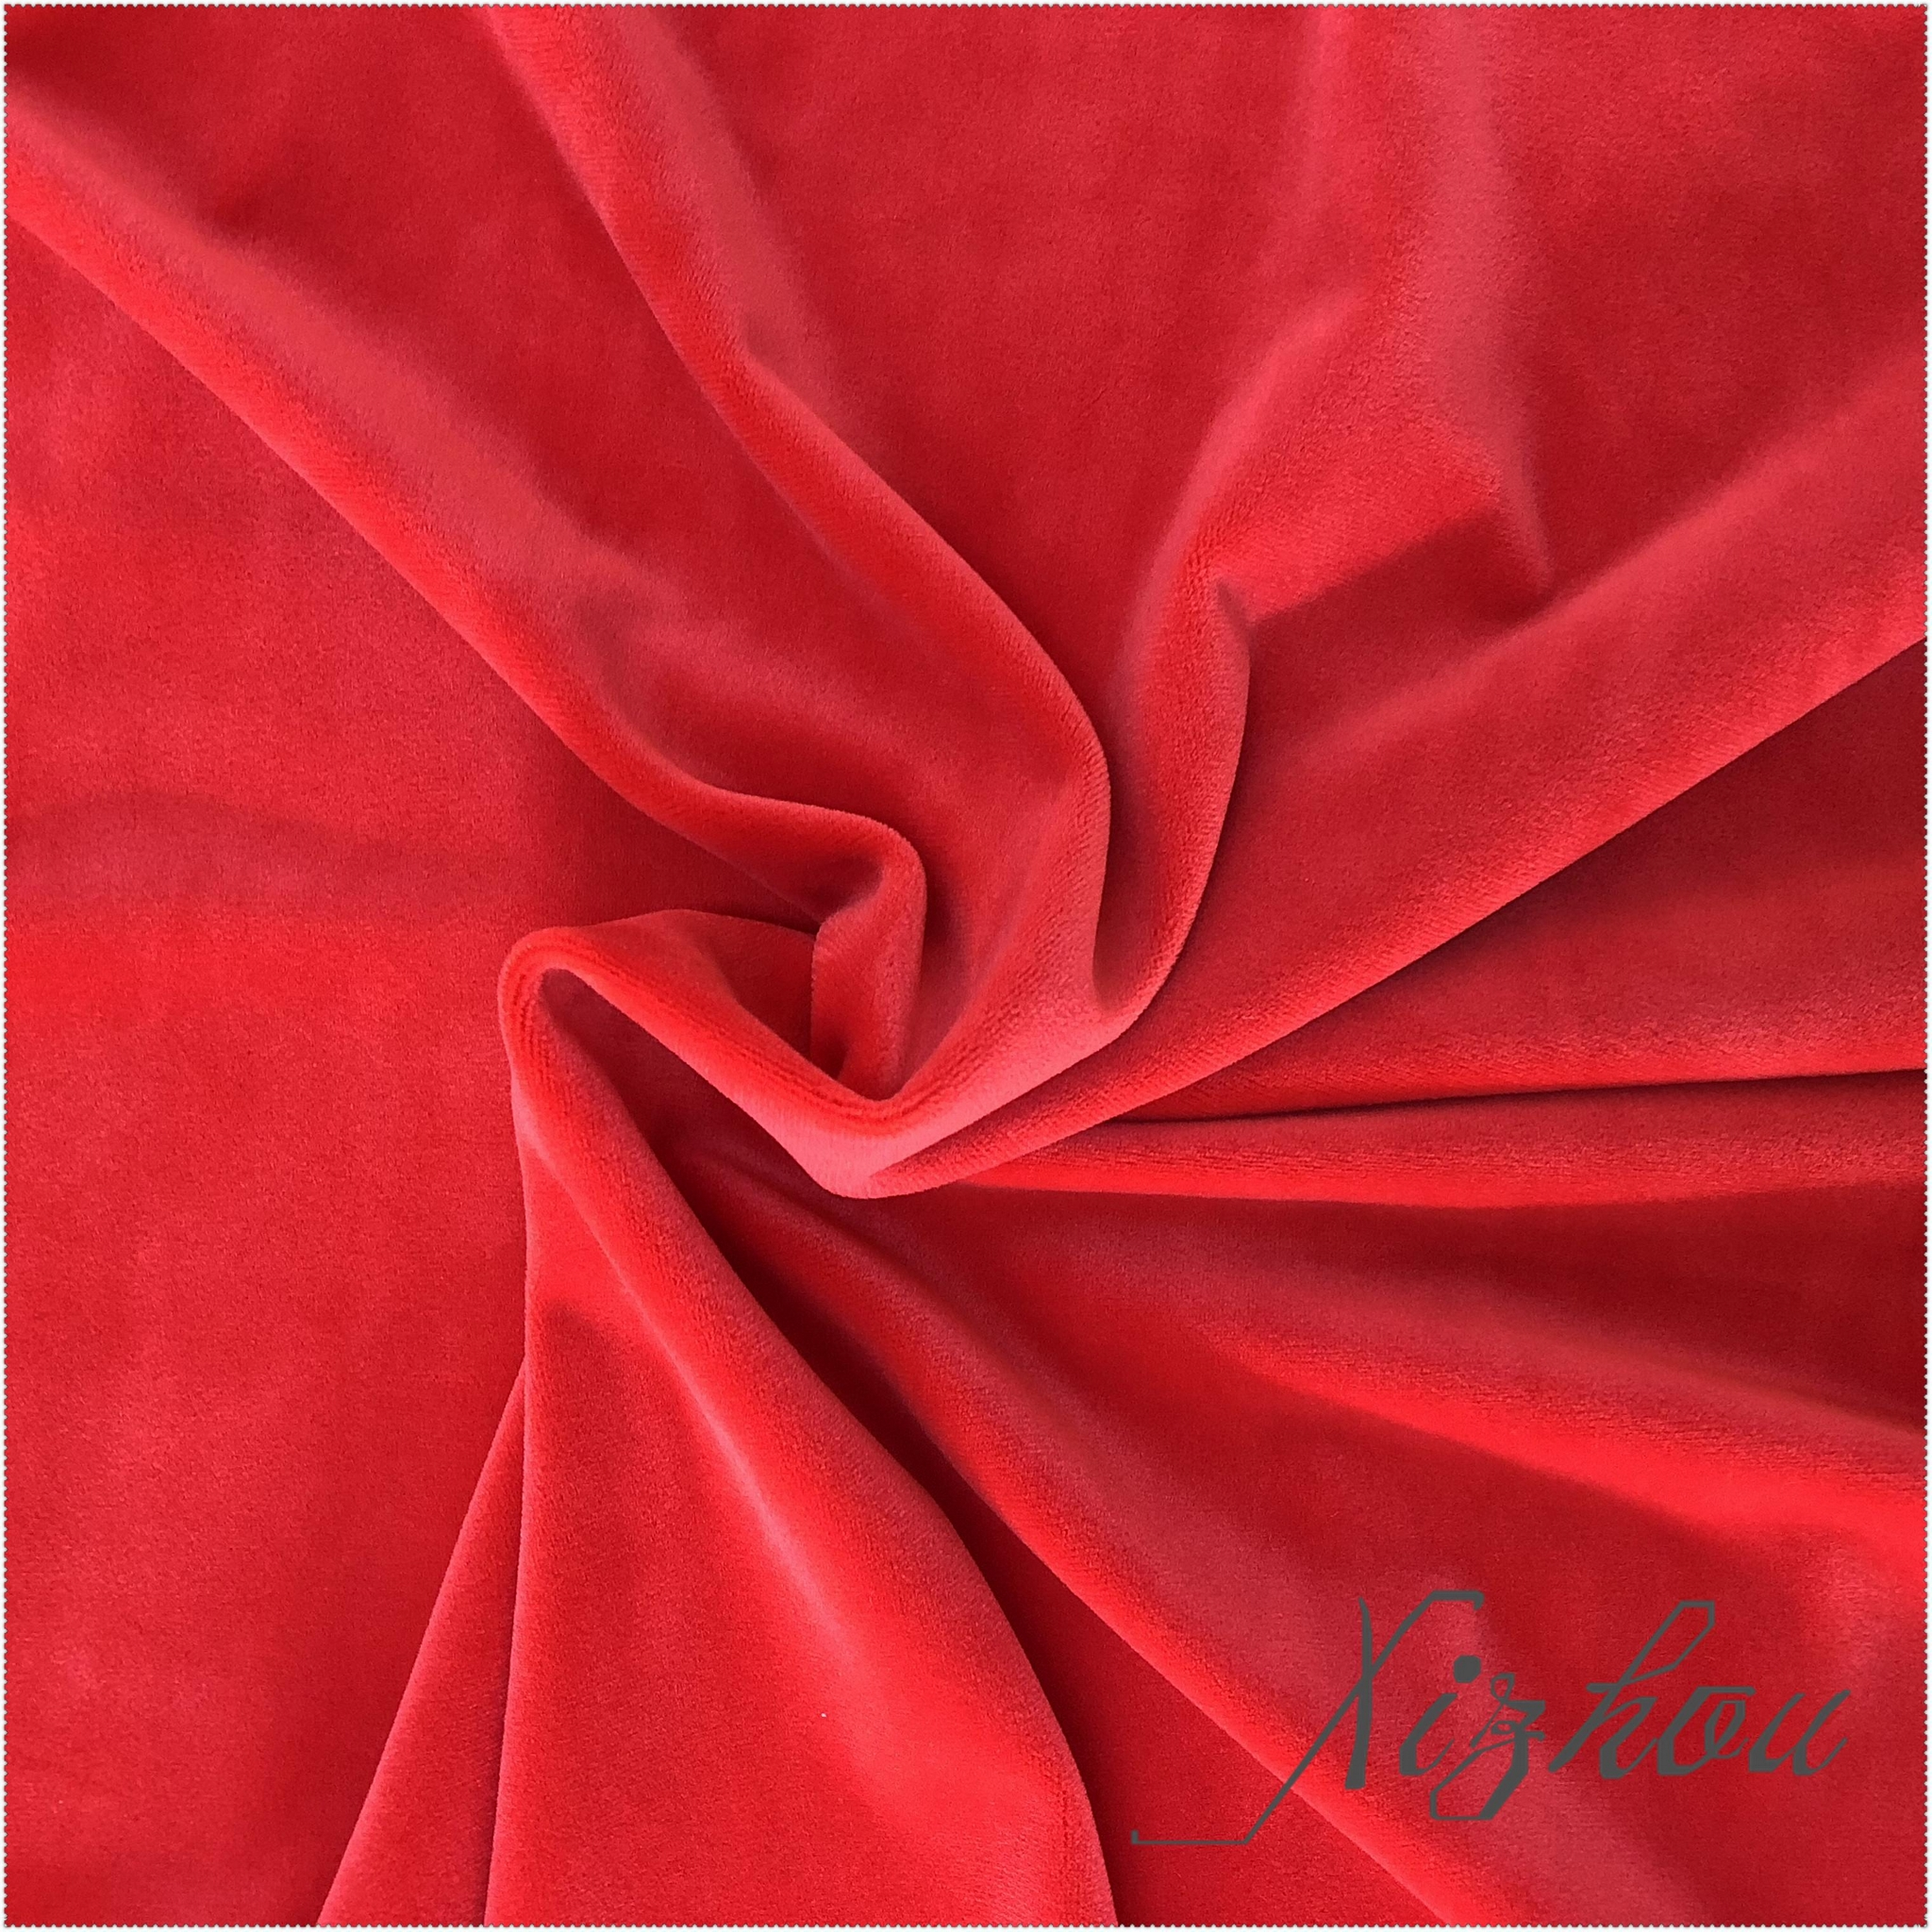 china-made polyester spandex supersoft short plush fabric for gar 1